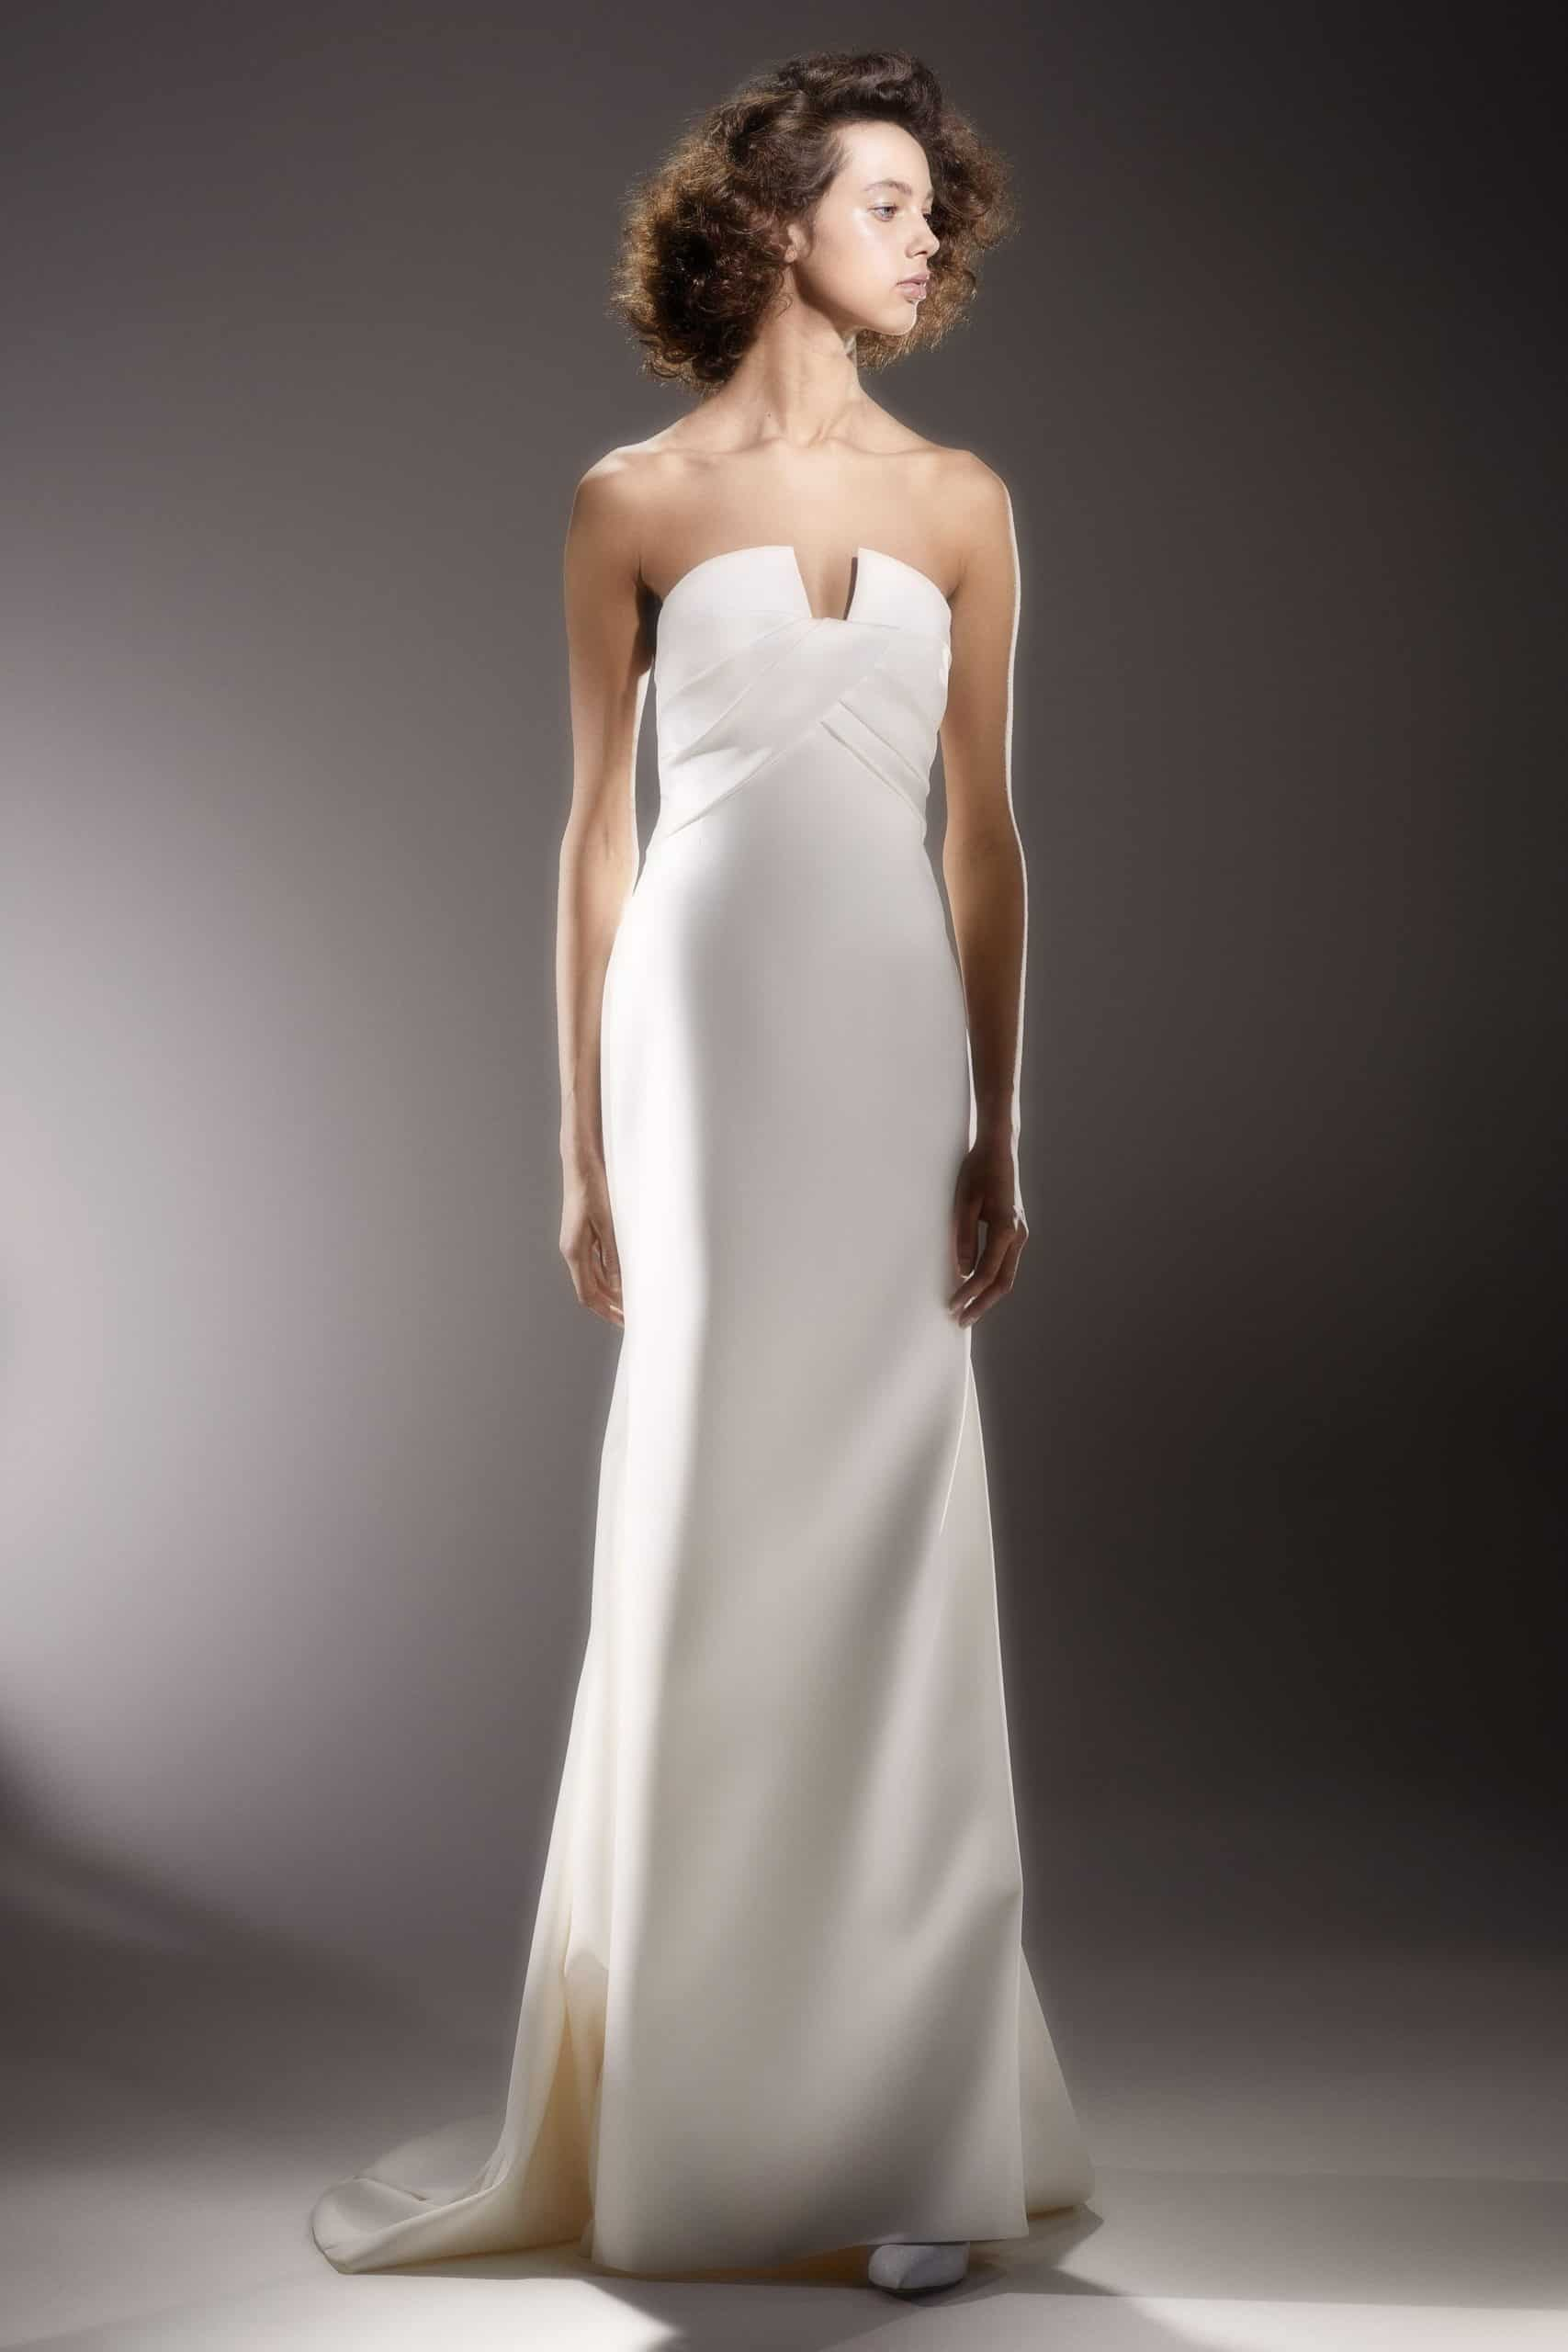 strapless wedding dress with a tale by Viktor and Rolf